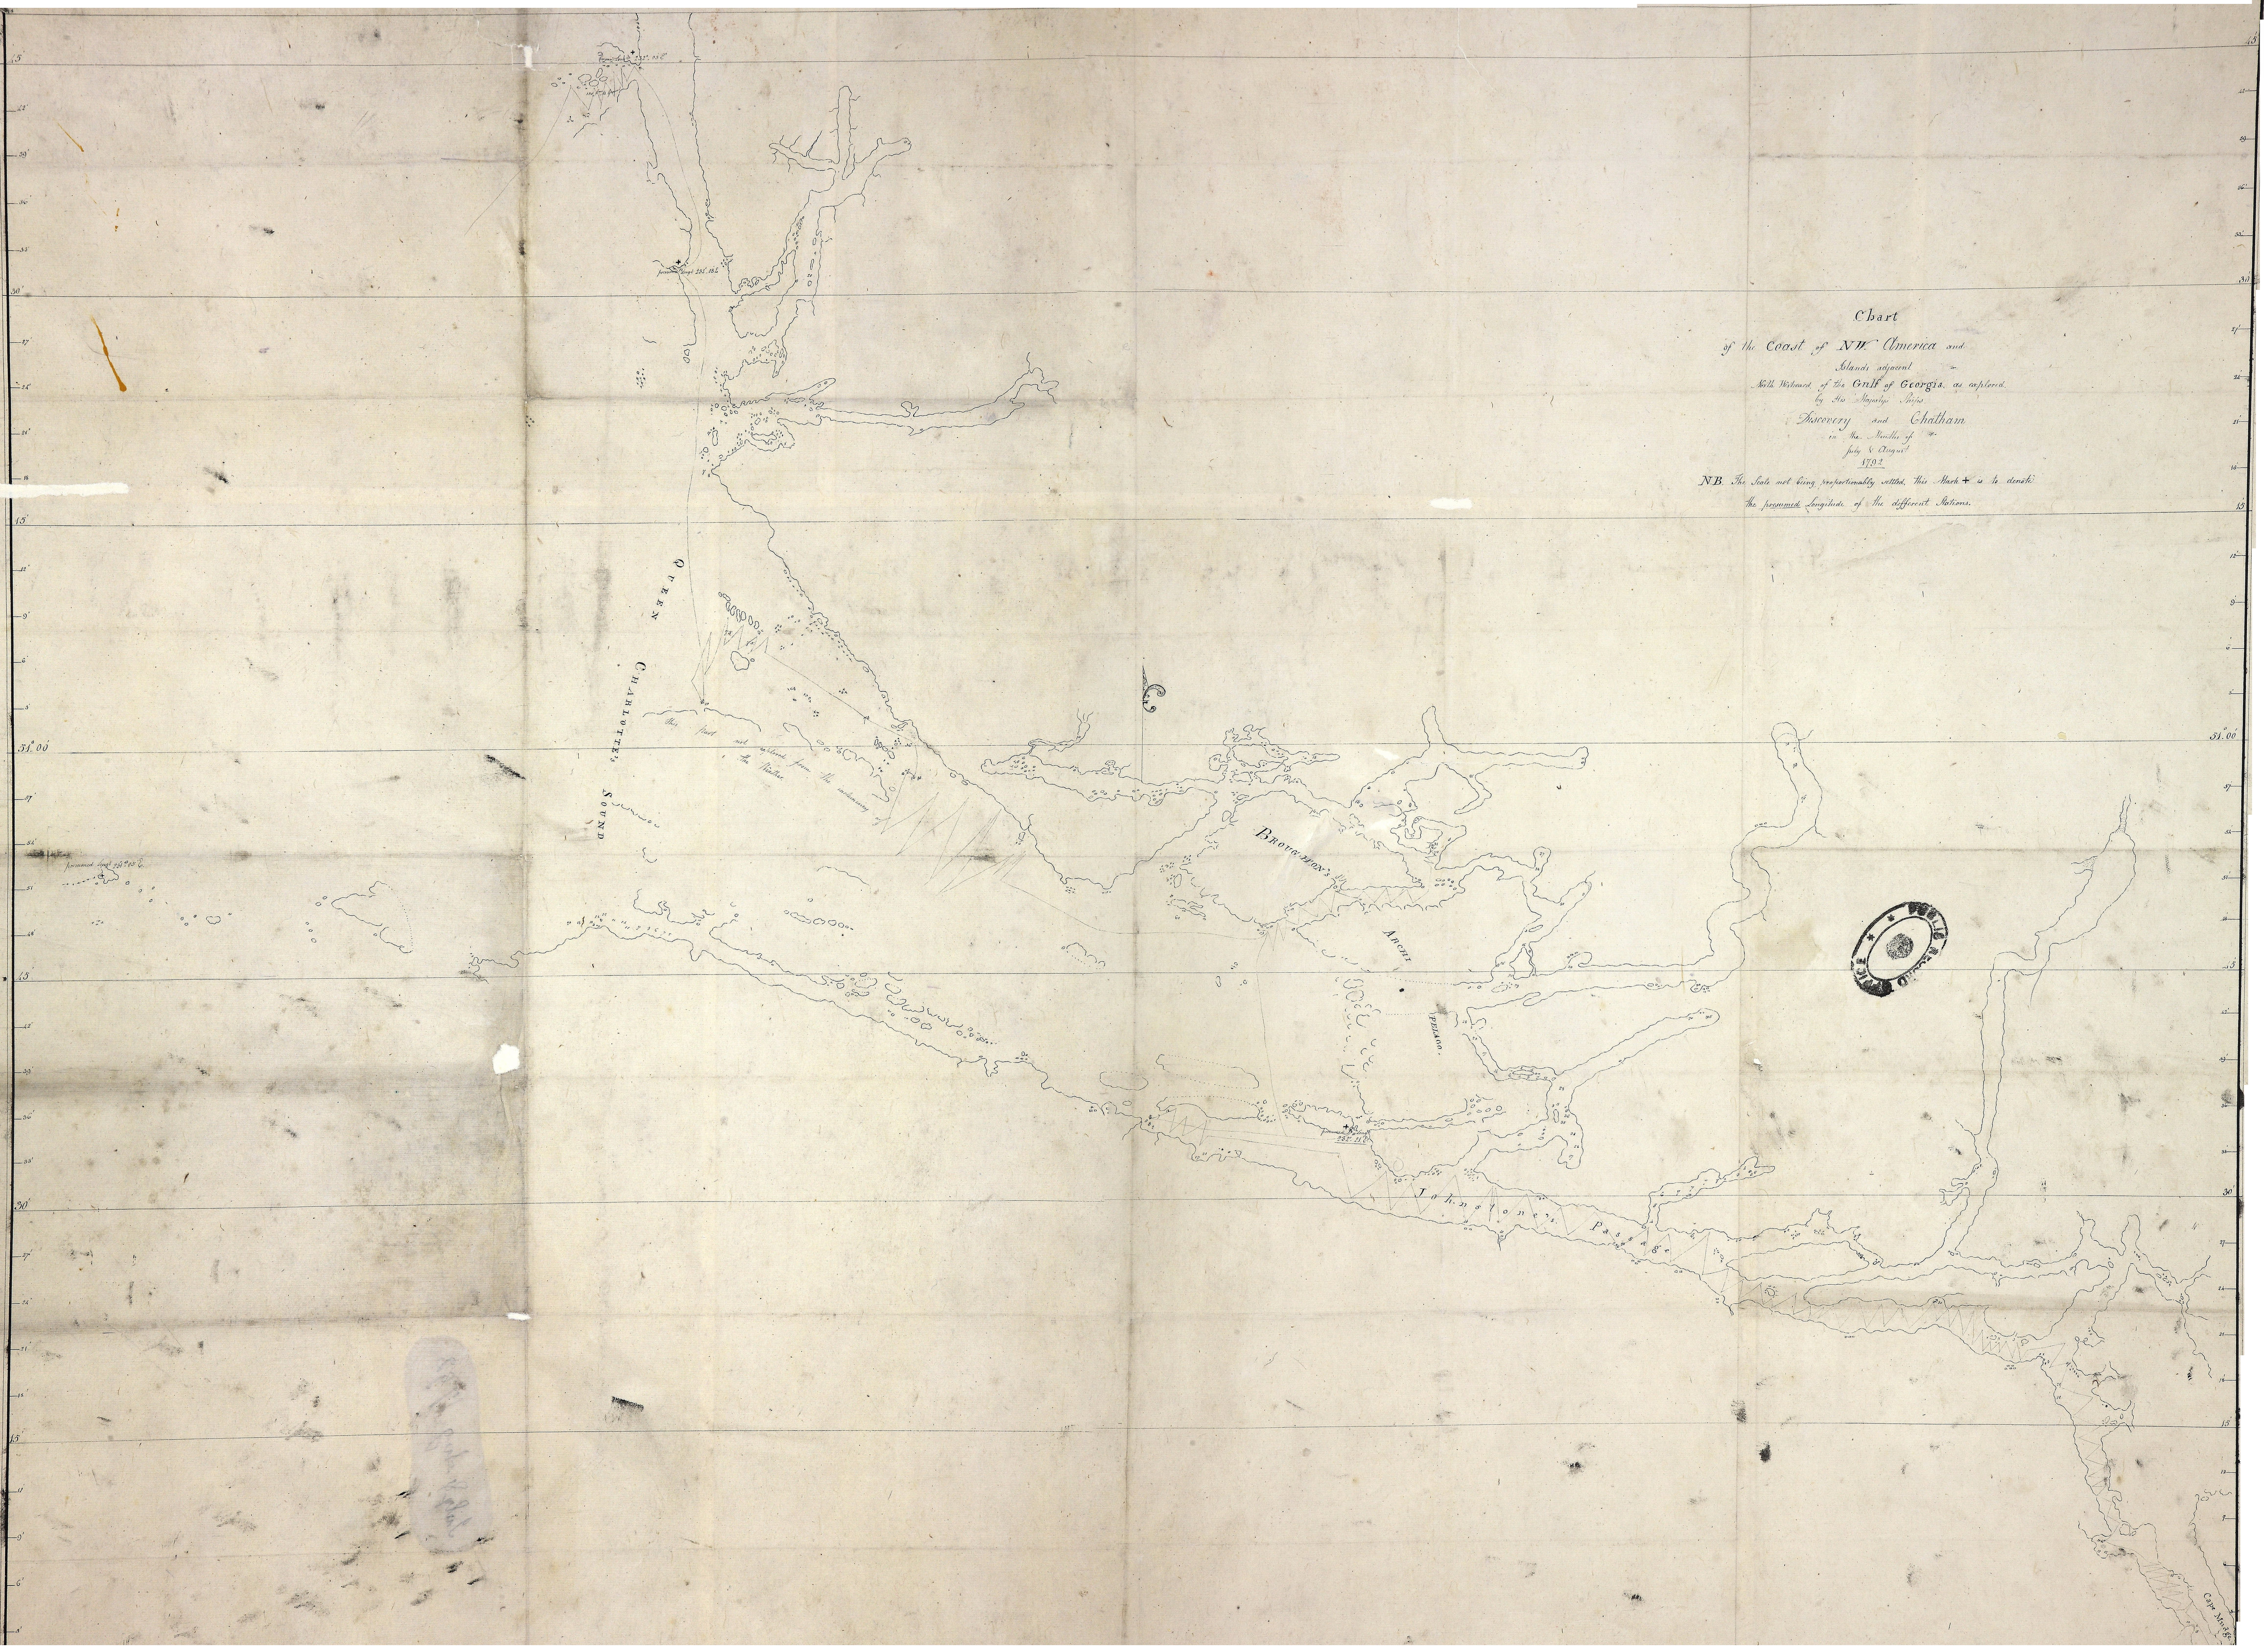 Chart of the Coast of NW America and Islands adjacent North Westward of the Gulf of Georgia as explored by His Majesty's Ships Discovery and Chatham in the Months of July & August 1792.', covering Queen Charlotte Sound from the sea to Cape Mudge. Scale: 1 inch to about 4½ miles. Compass indicator. Longitude is shown east from Greenwich. [Queen Charlotte Sound, 1792]